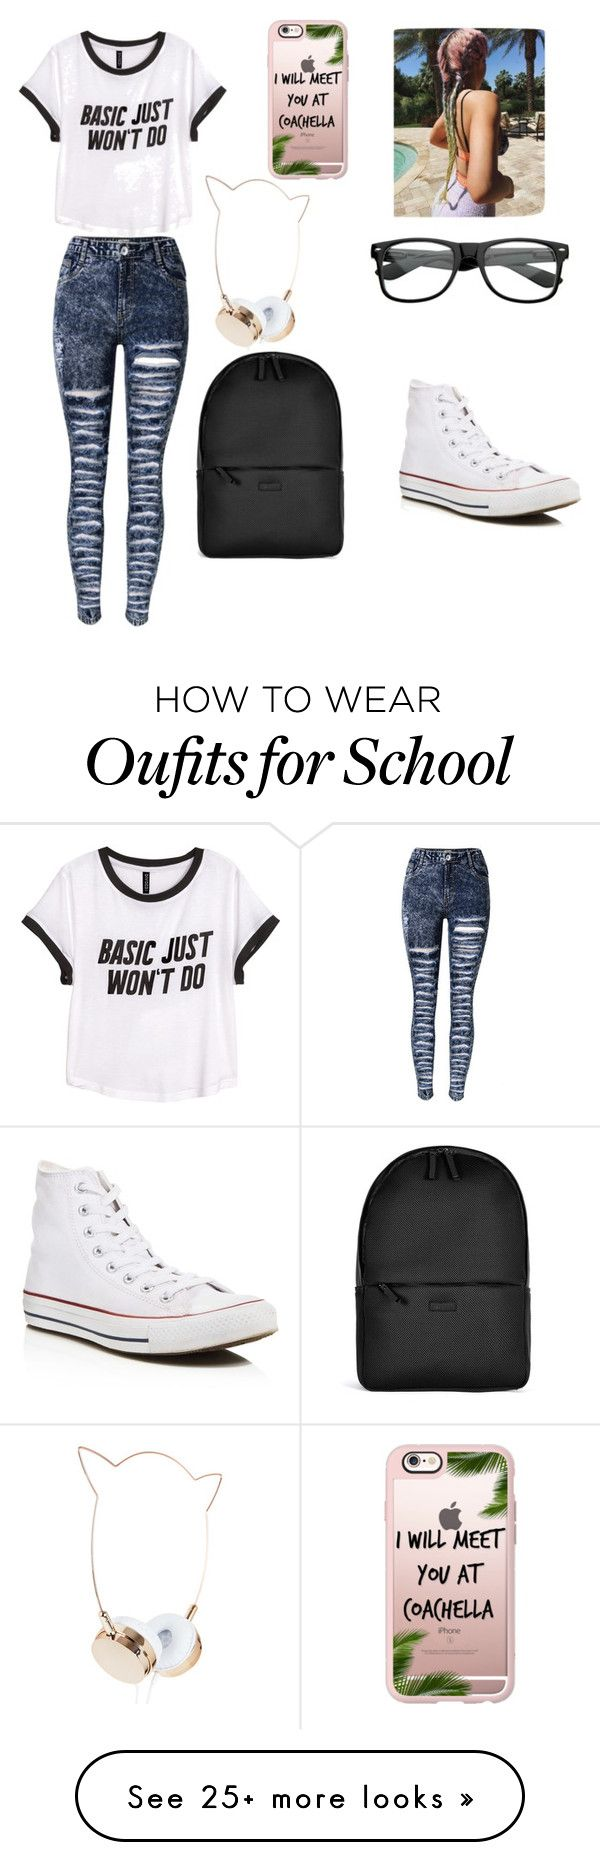 """School "" by ana-zelic on Polyvore featuring H&M, Converse, Casetify and Rains"